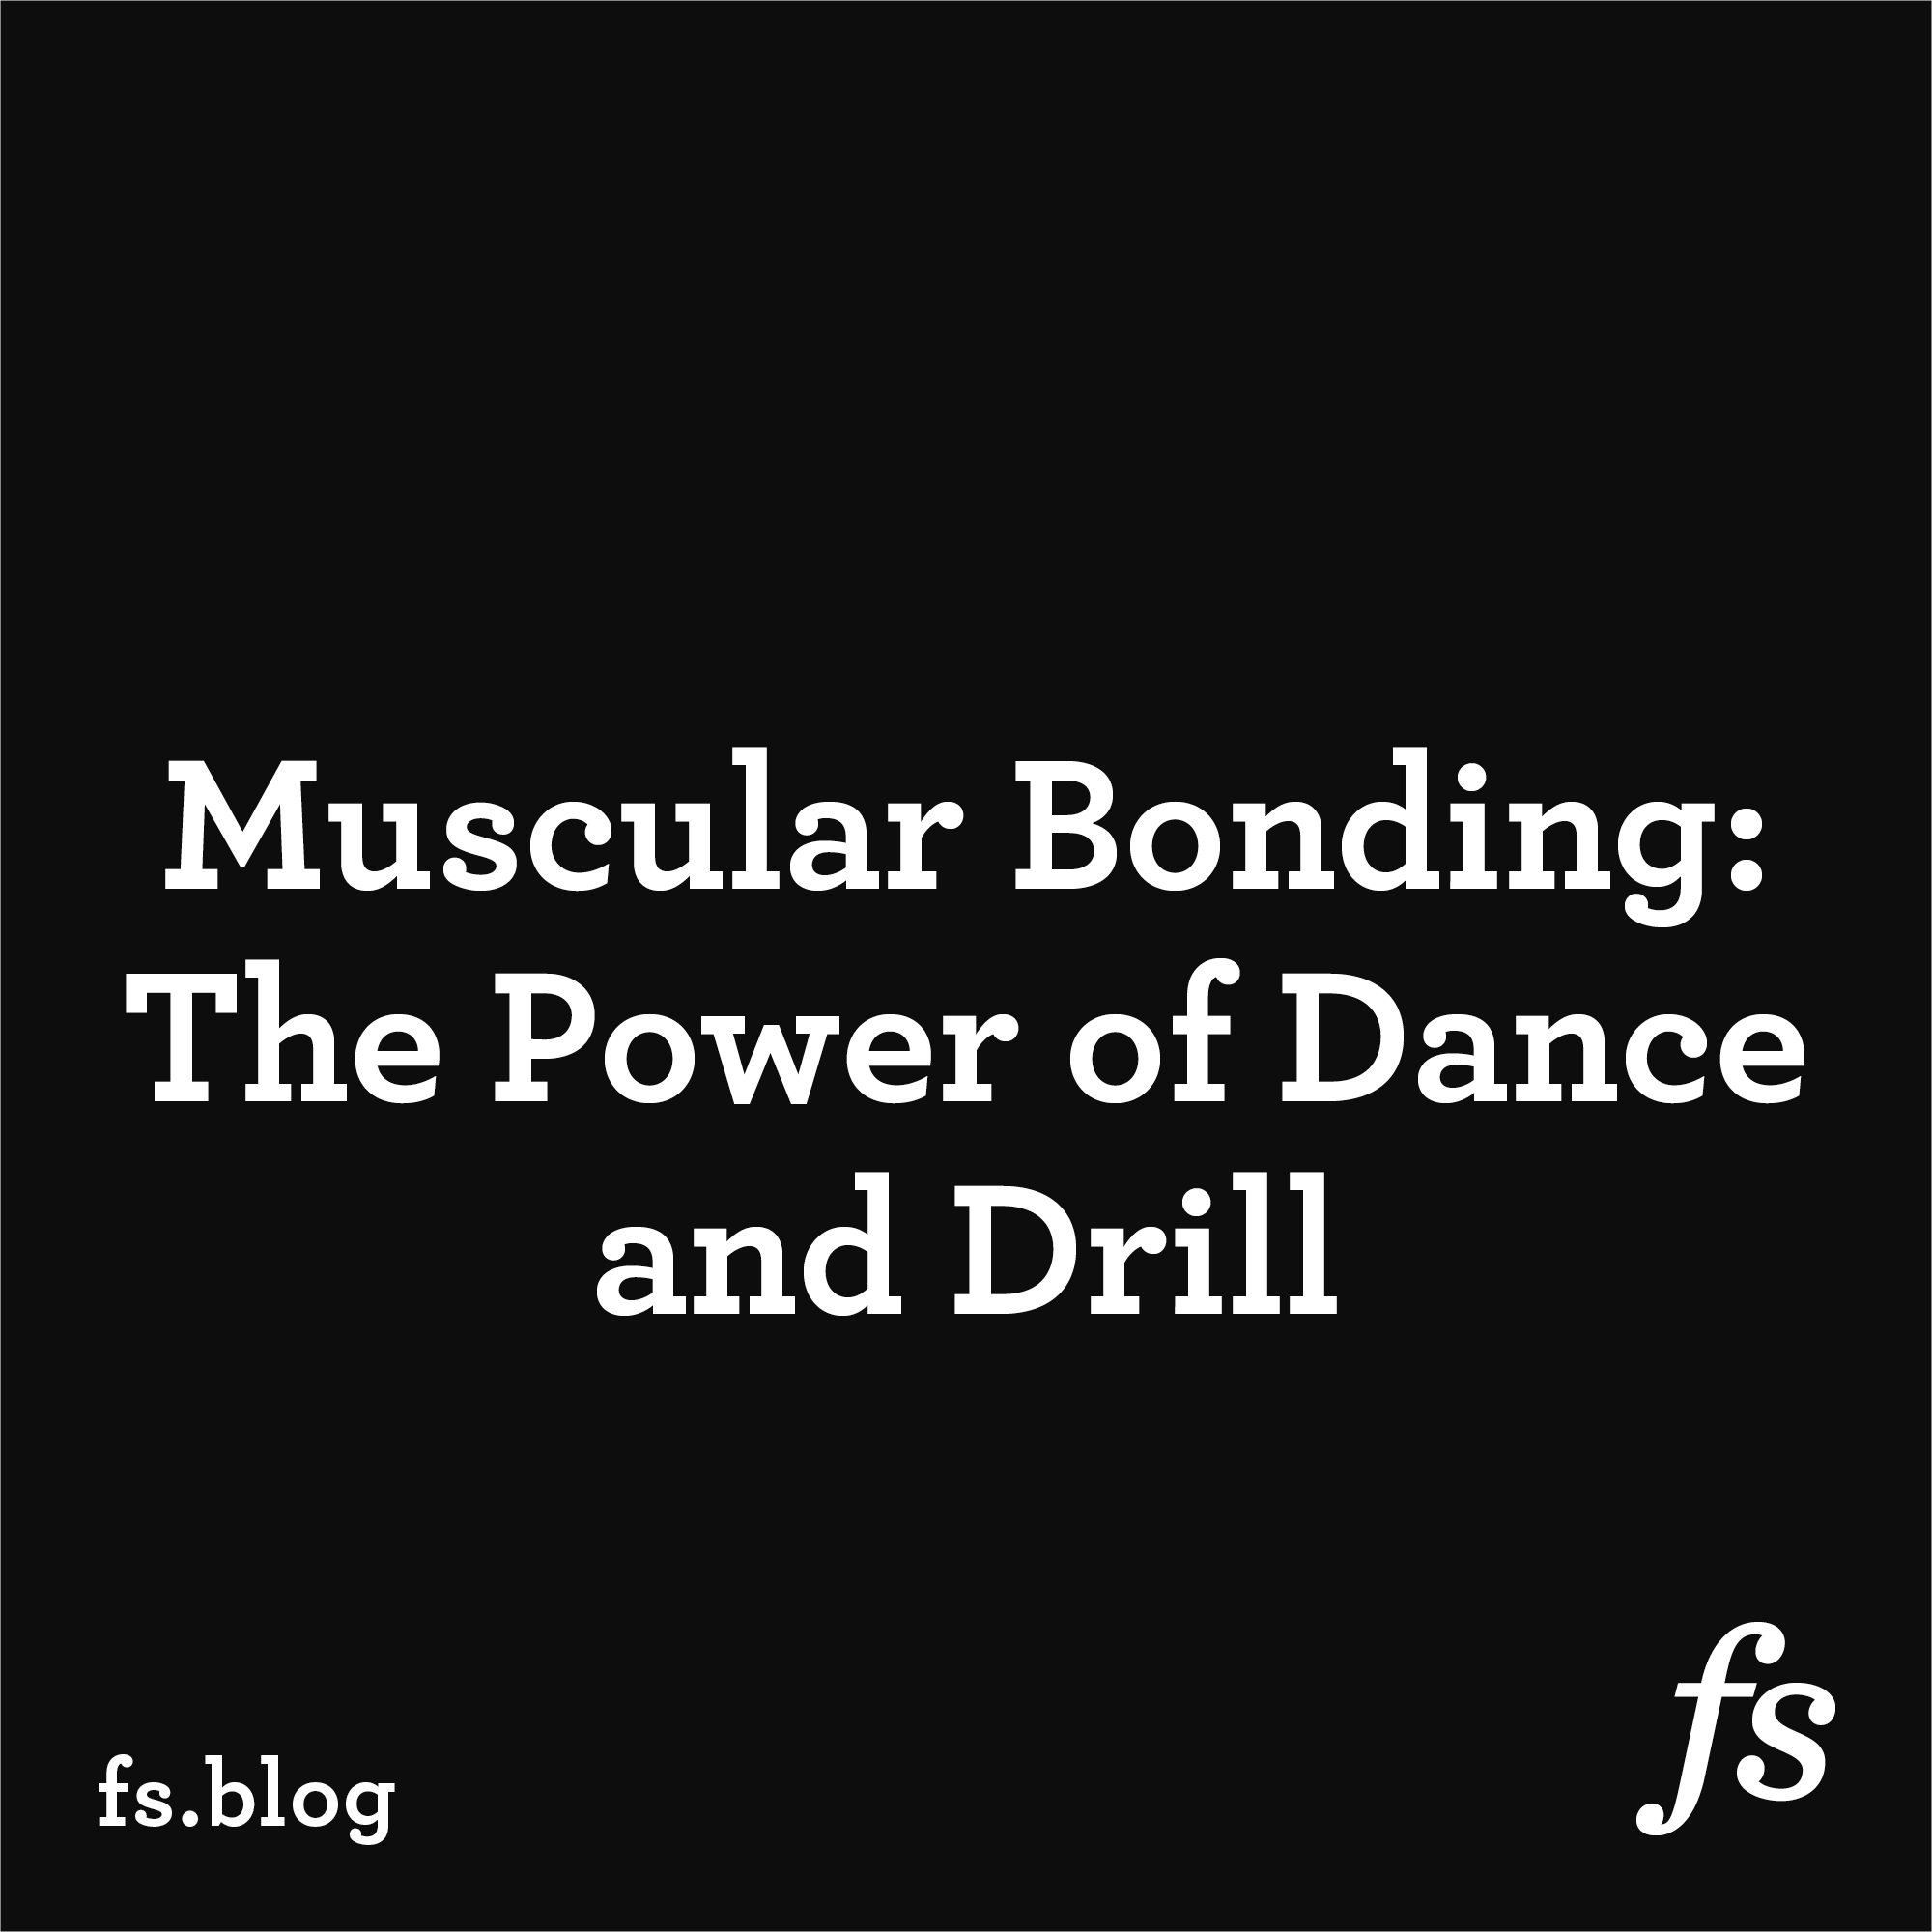 Muscular Bonding: The Power of Dance and Drill